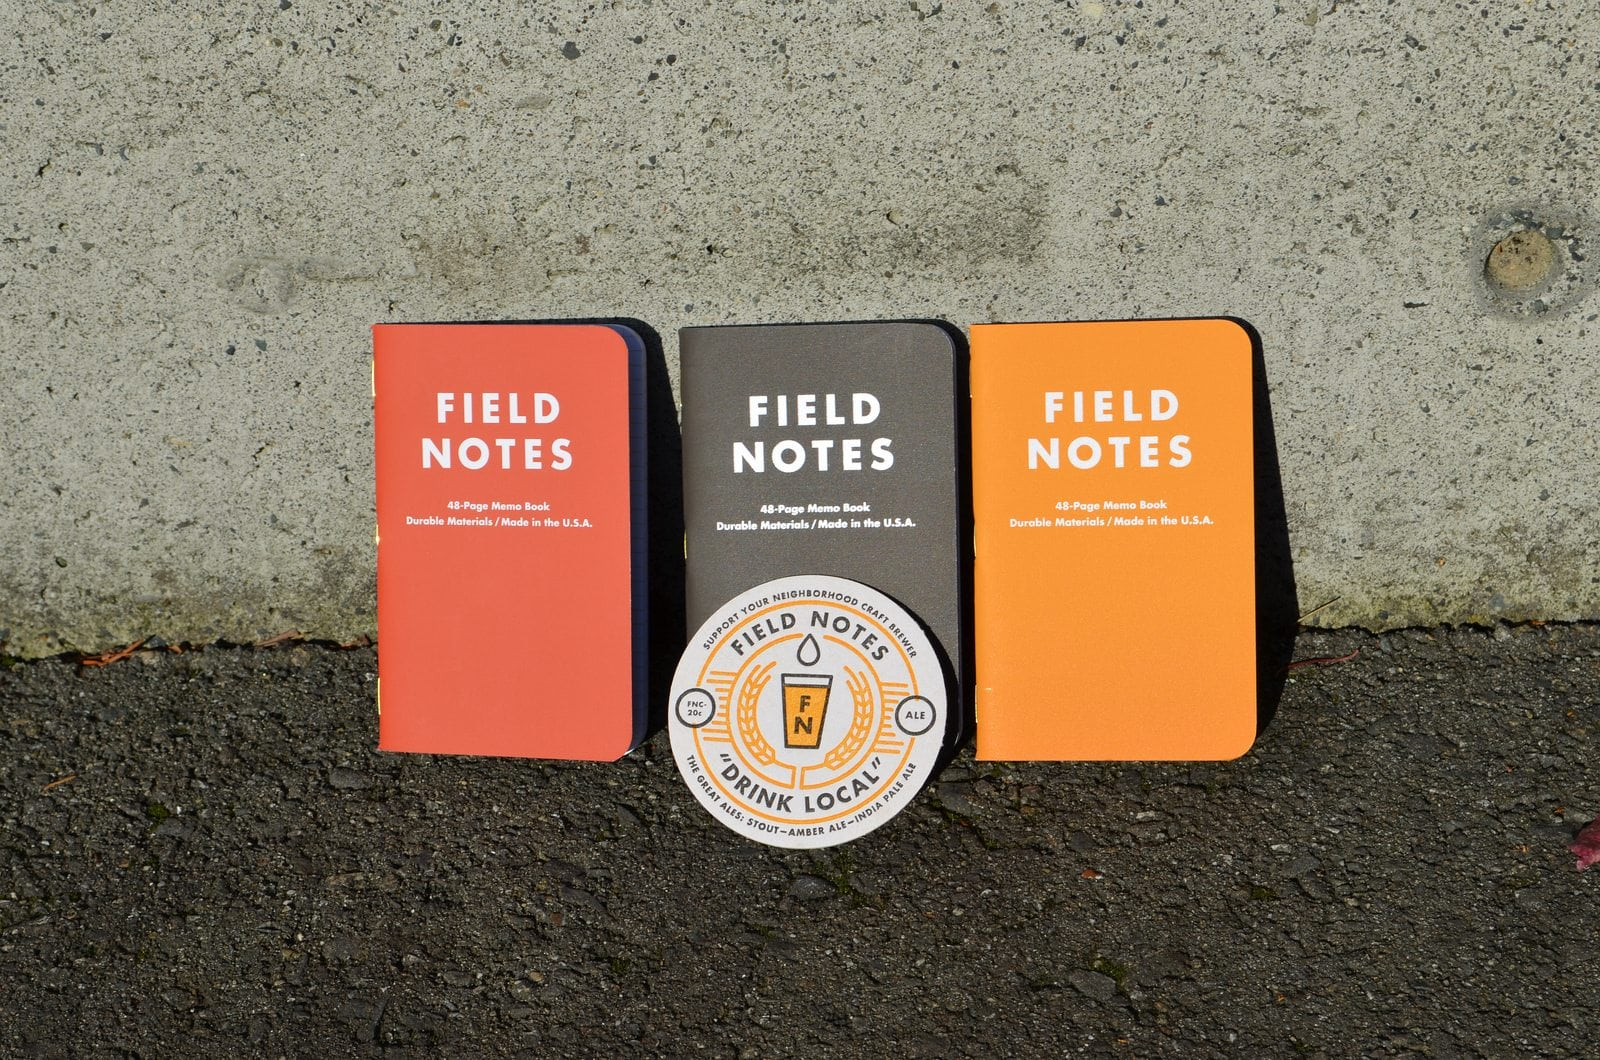 Field Notes Drink Local Ales